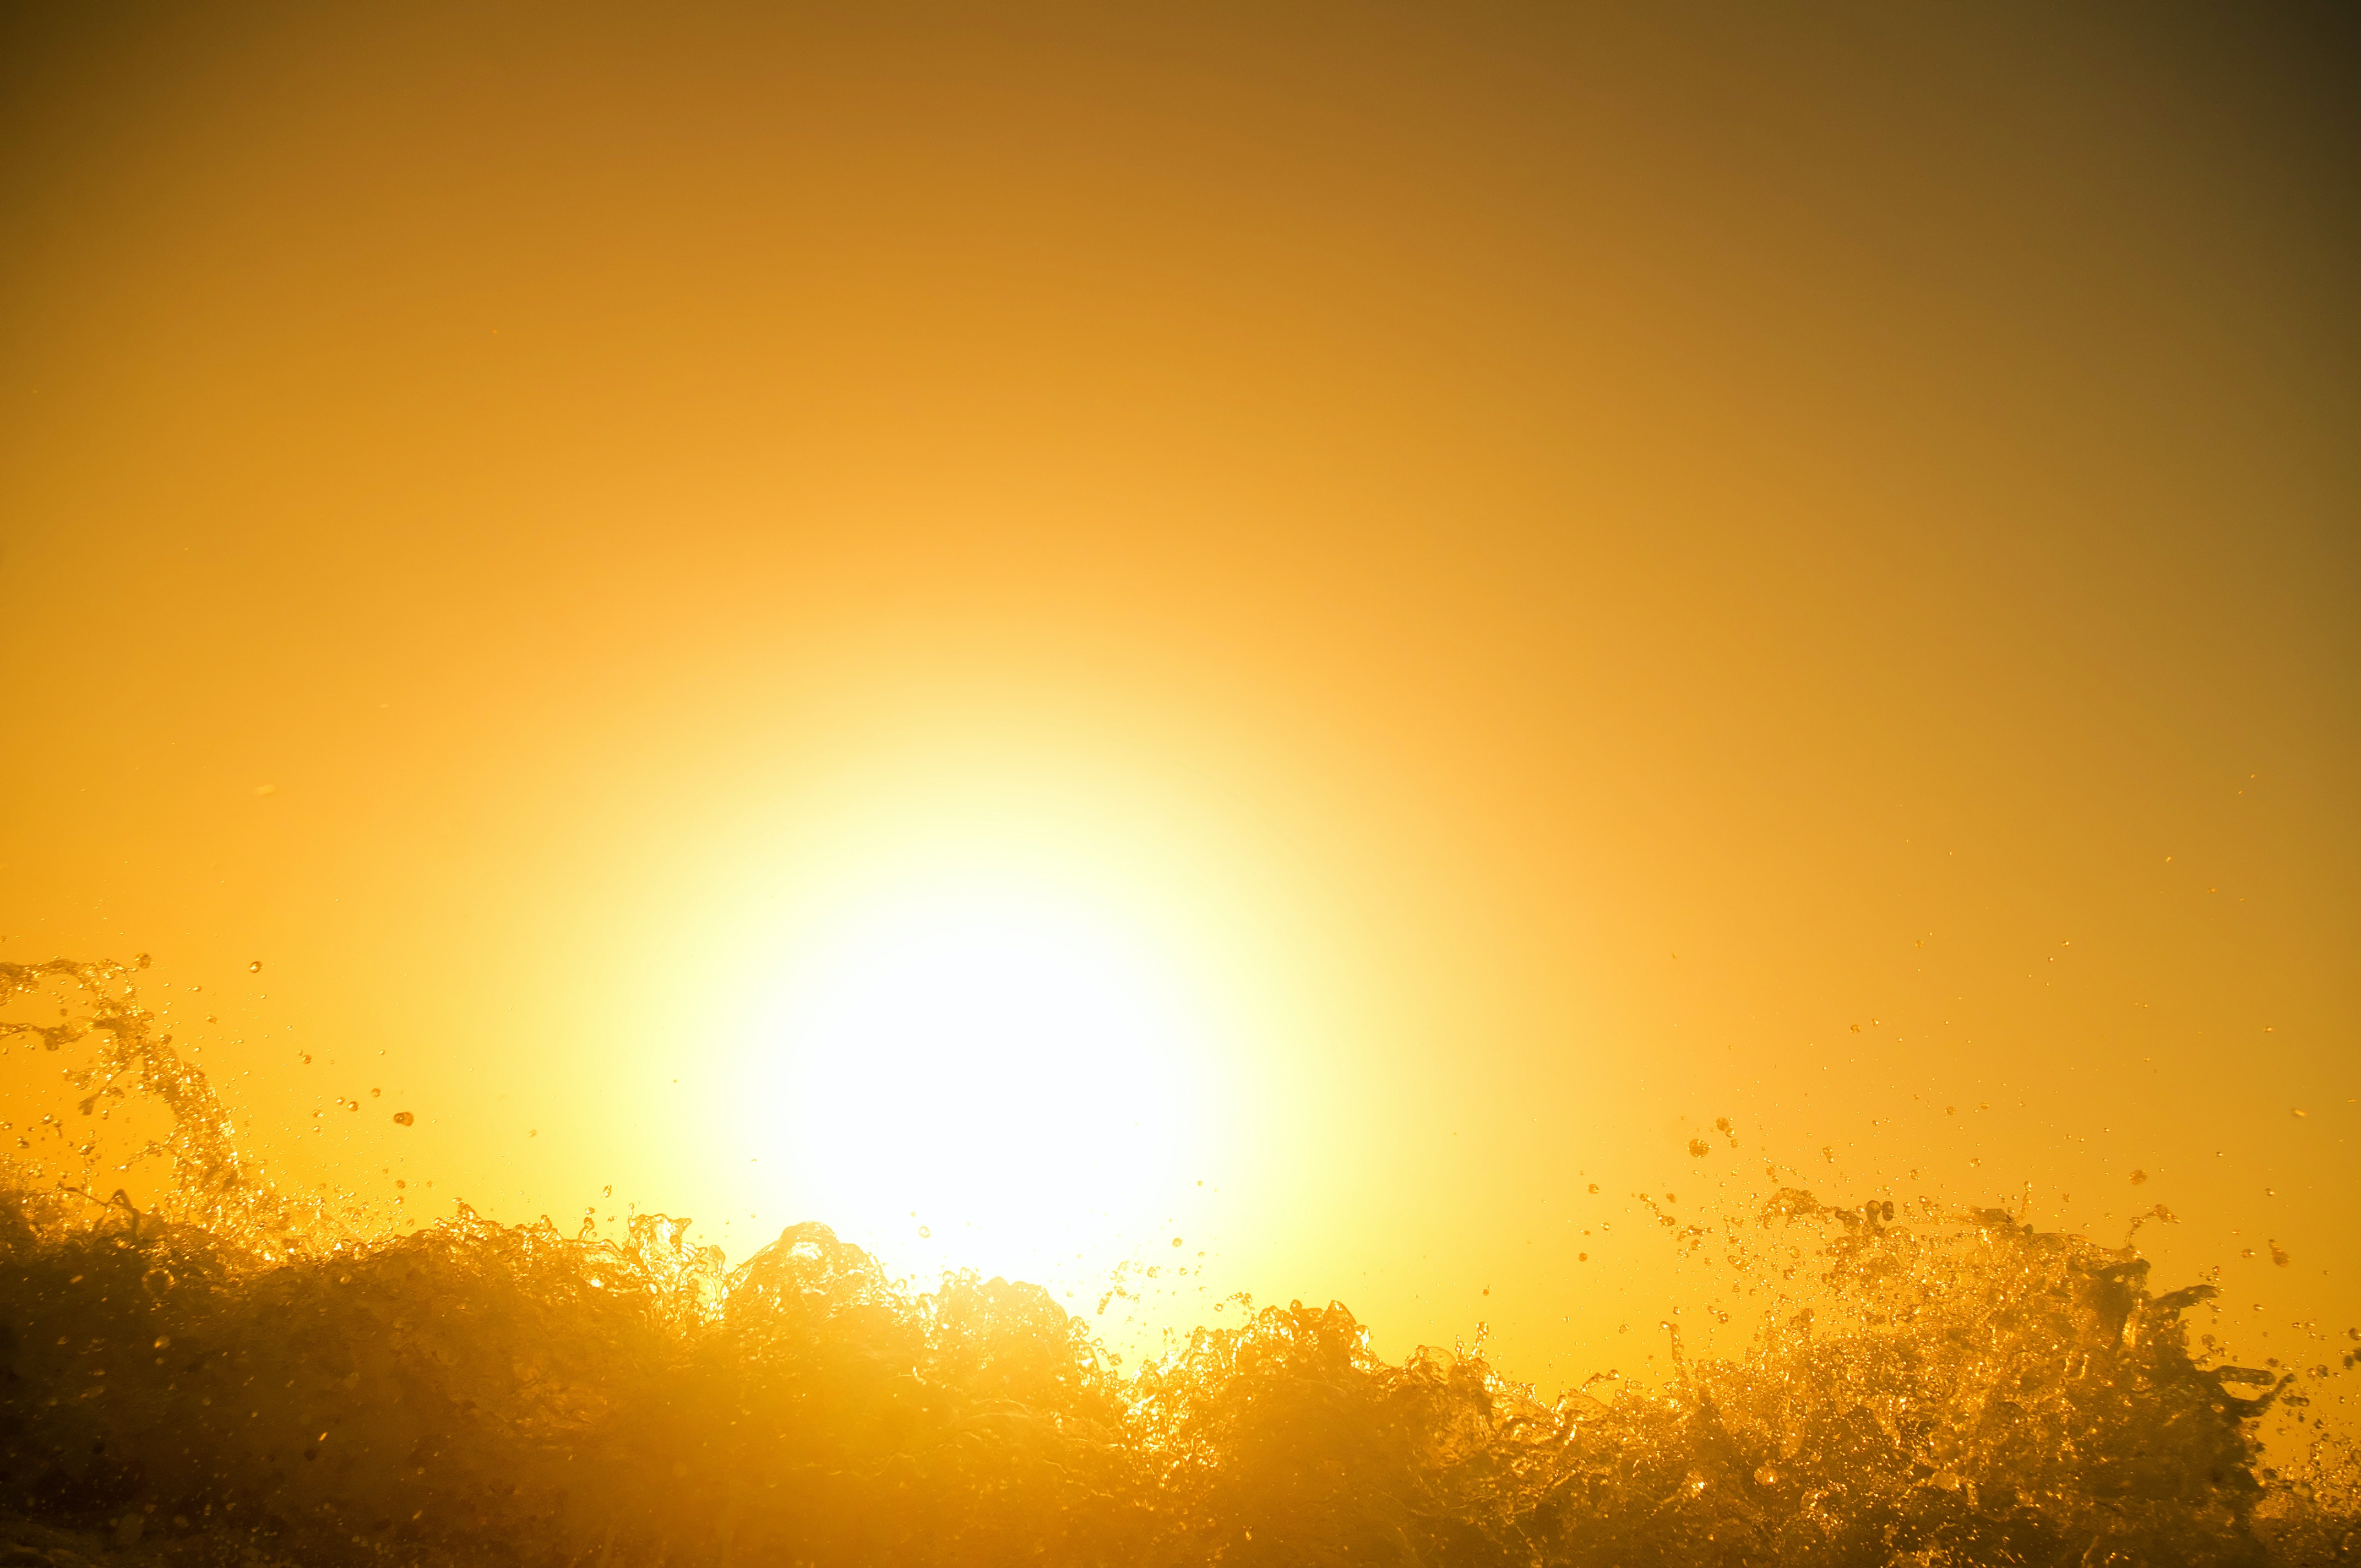 Blocking out the sun to reduce global warming - an idea still in the making